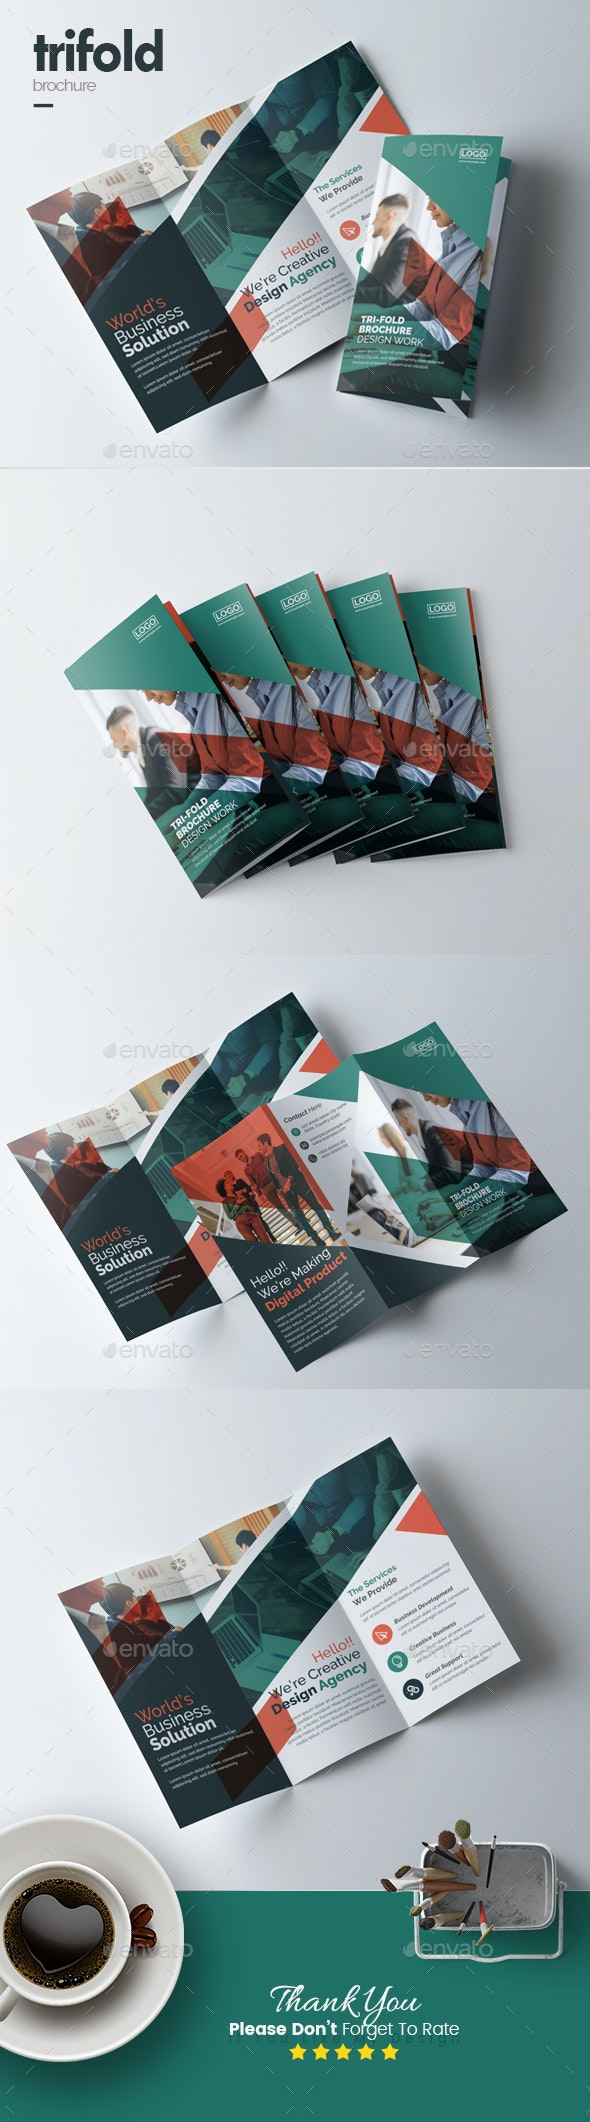 Trifold Business Brochure - Corporate Brochures